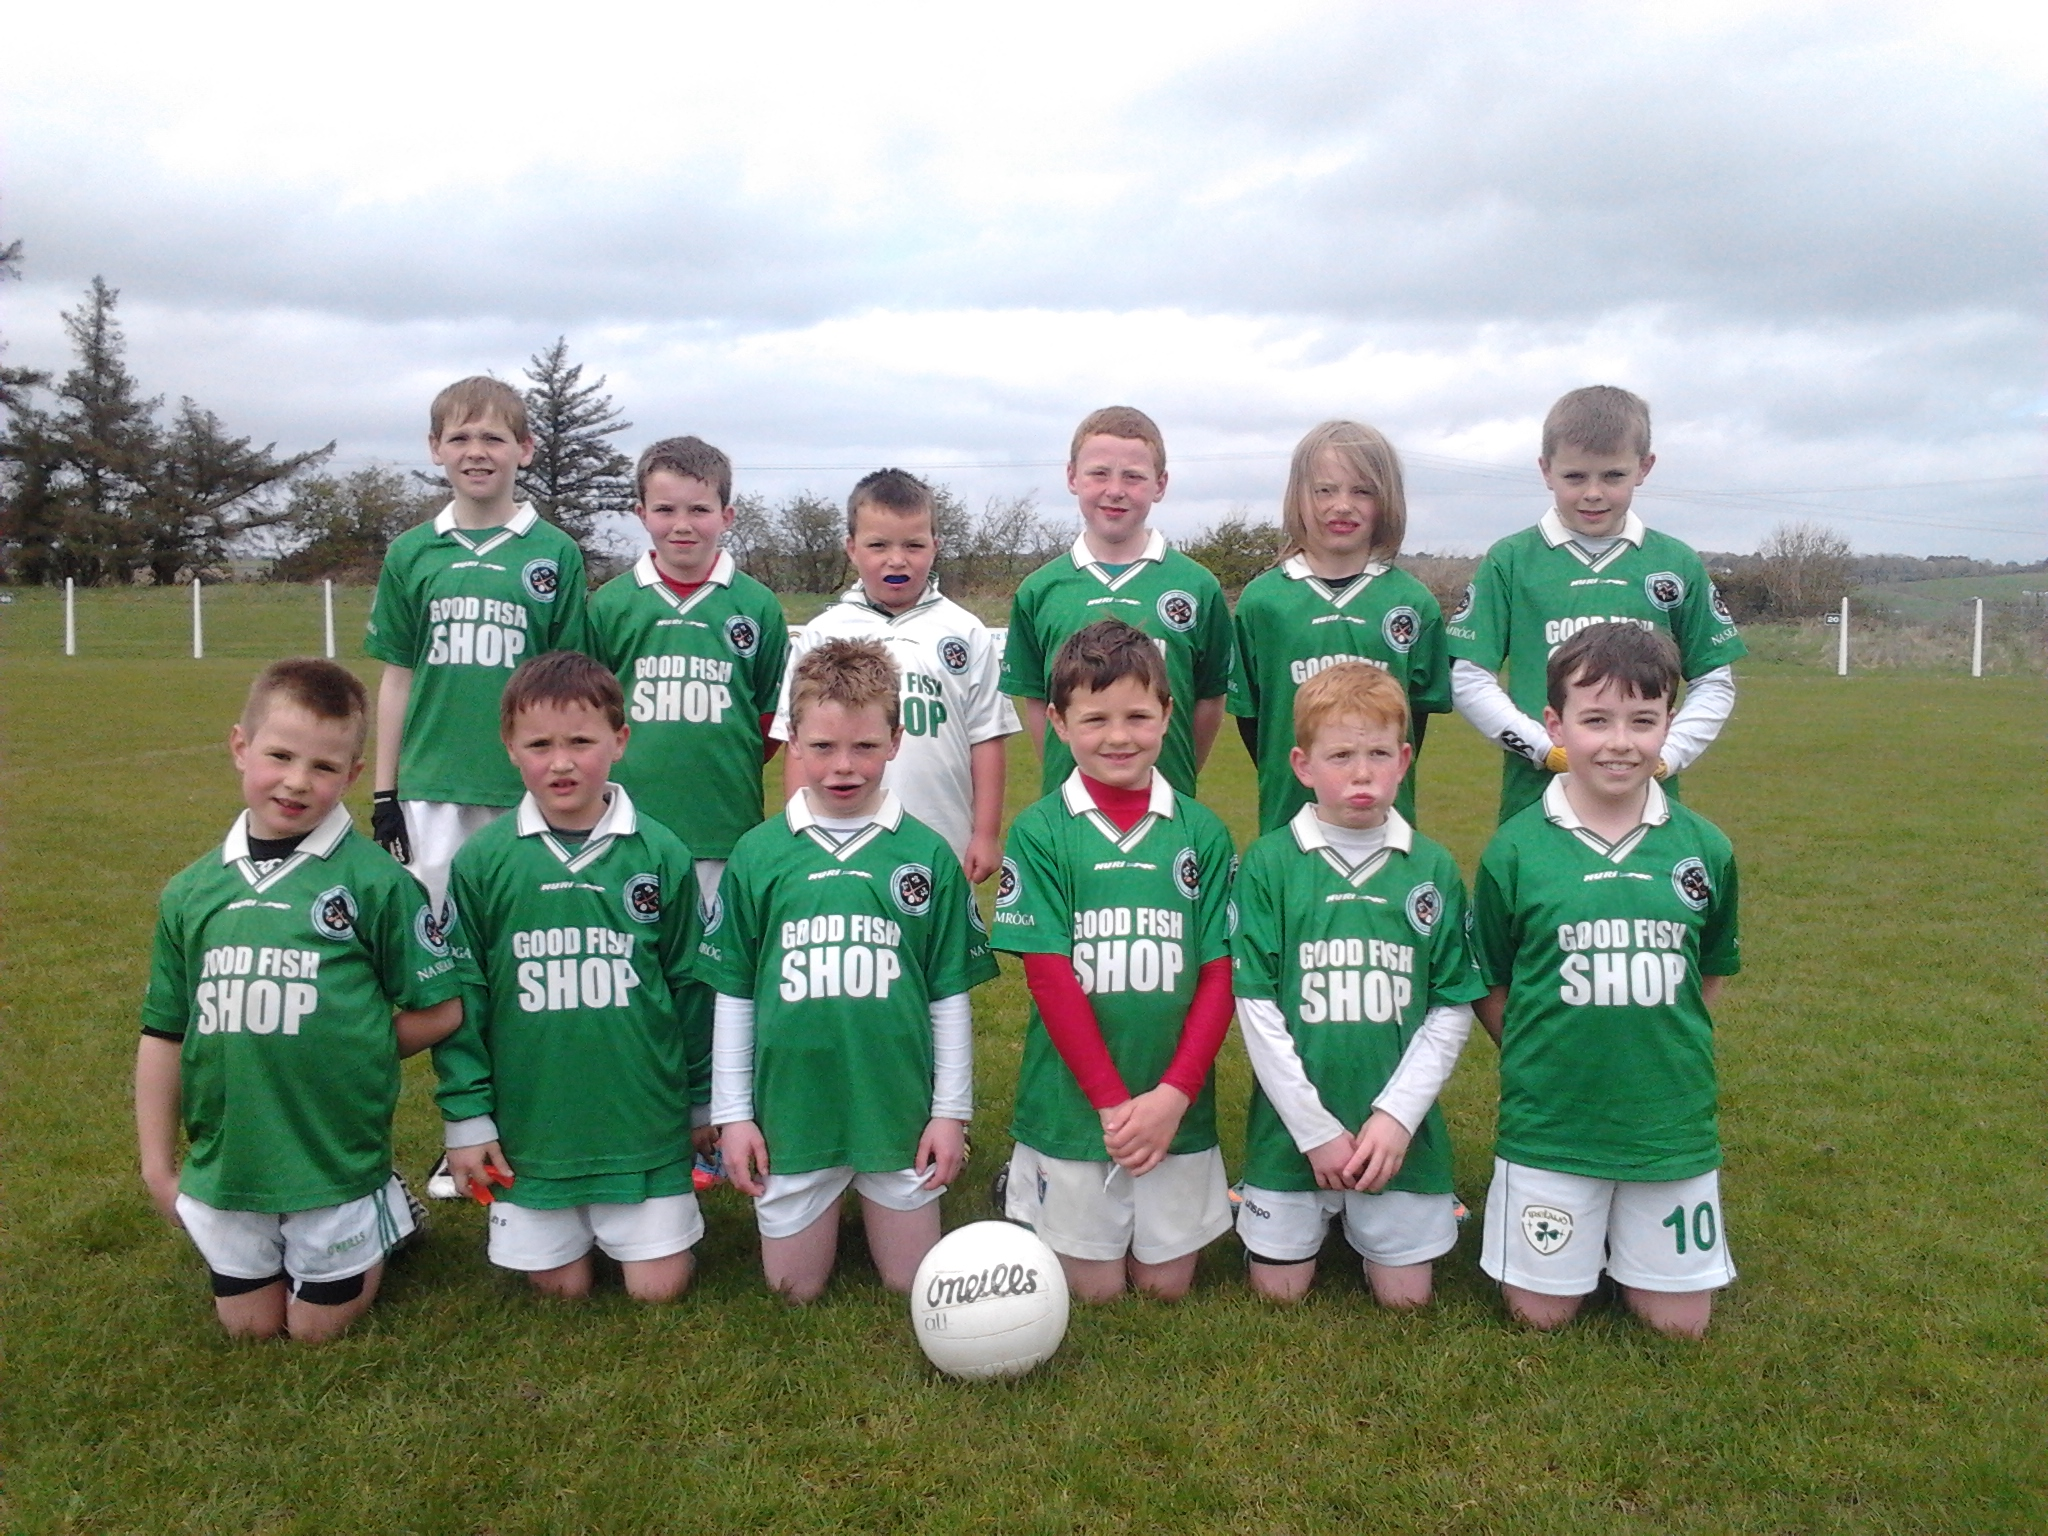 Shamrocks squad V Courcey Rovers, 28/4/13. Back row, left to right - Fionn Meighan, Harry Andrews, Josh Bartlett, Fionn Herlihy, Derry Howard, Mark Sisk. Front, l to r: Eoin O'Flynn, Declan Carroll, Colin Murphy, Michael Foy, Darragh O'Brien, Jack O'Leary.